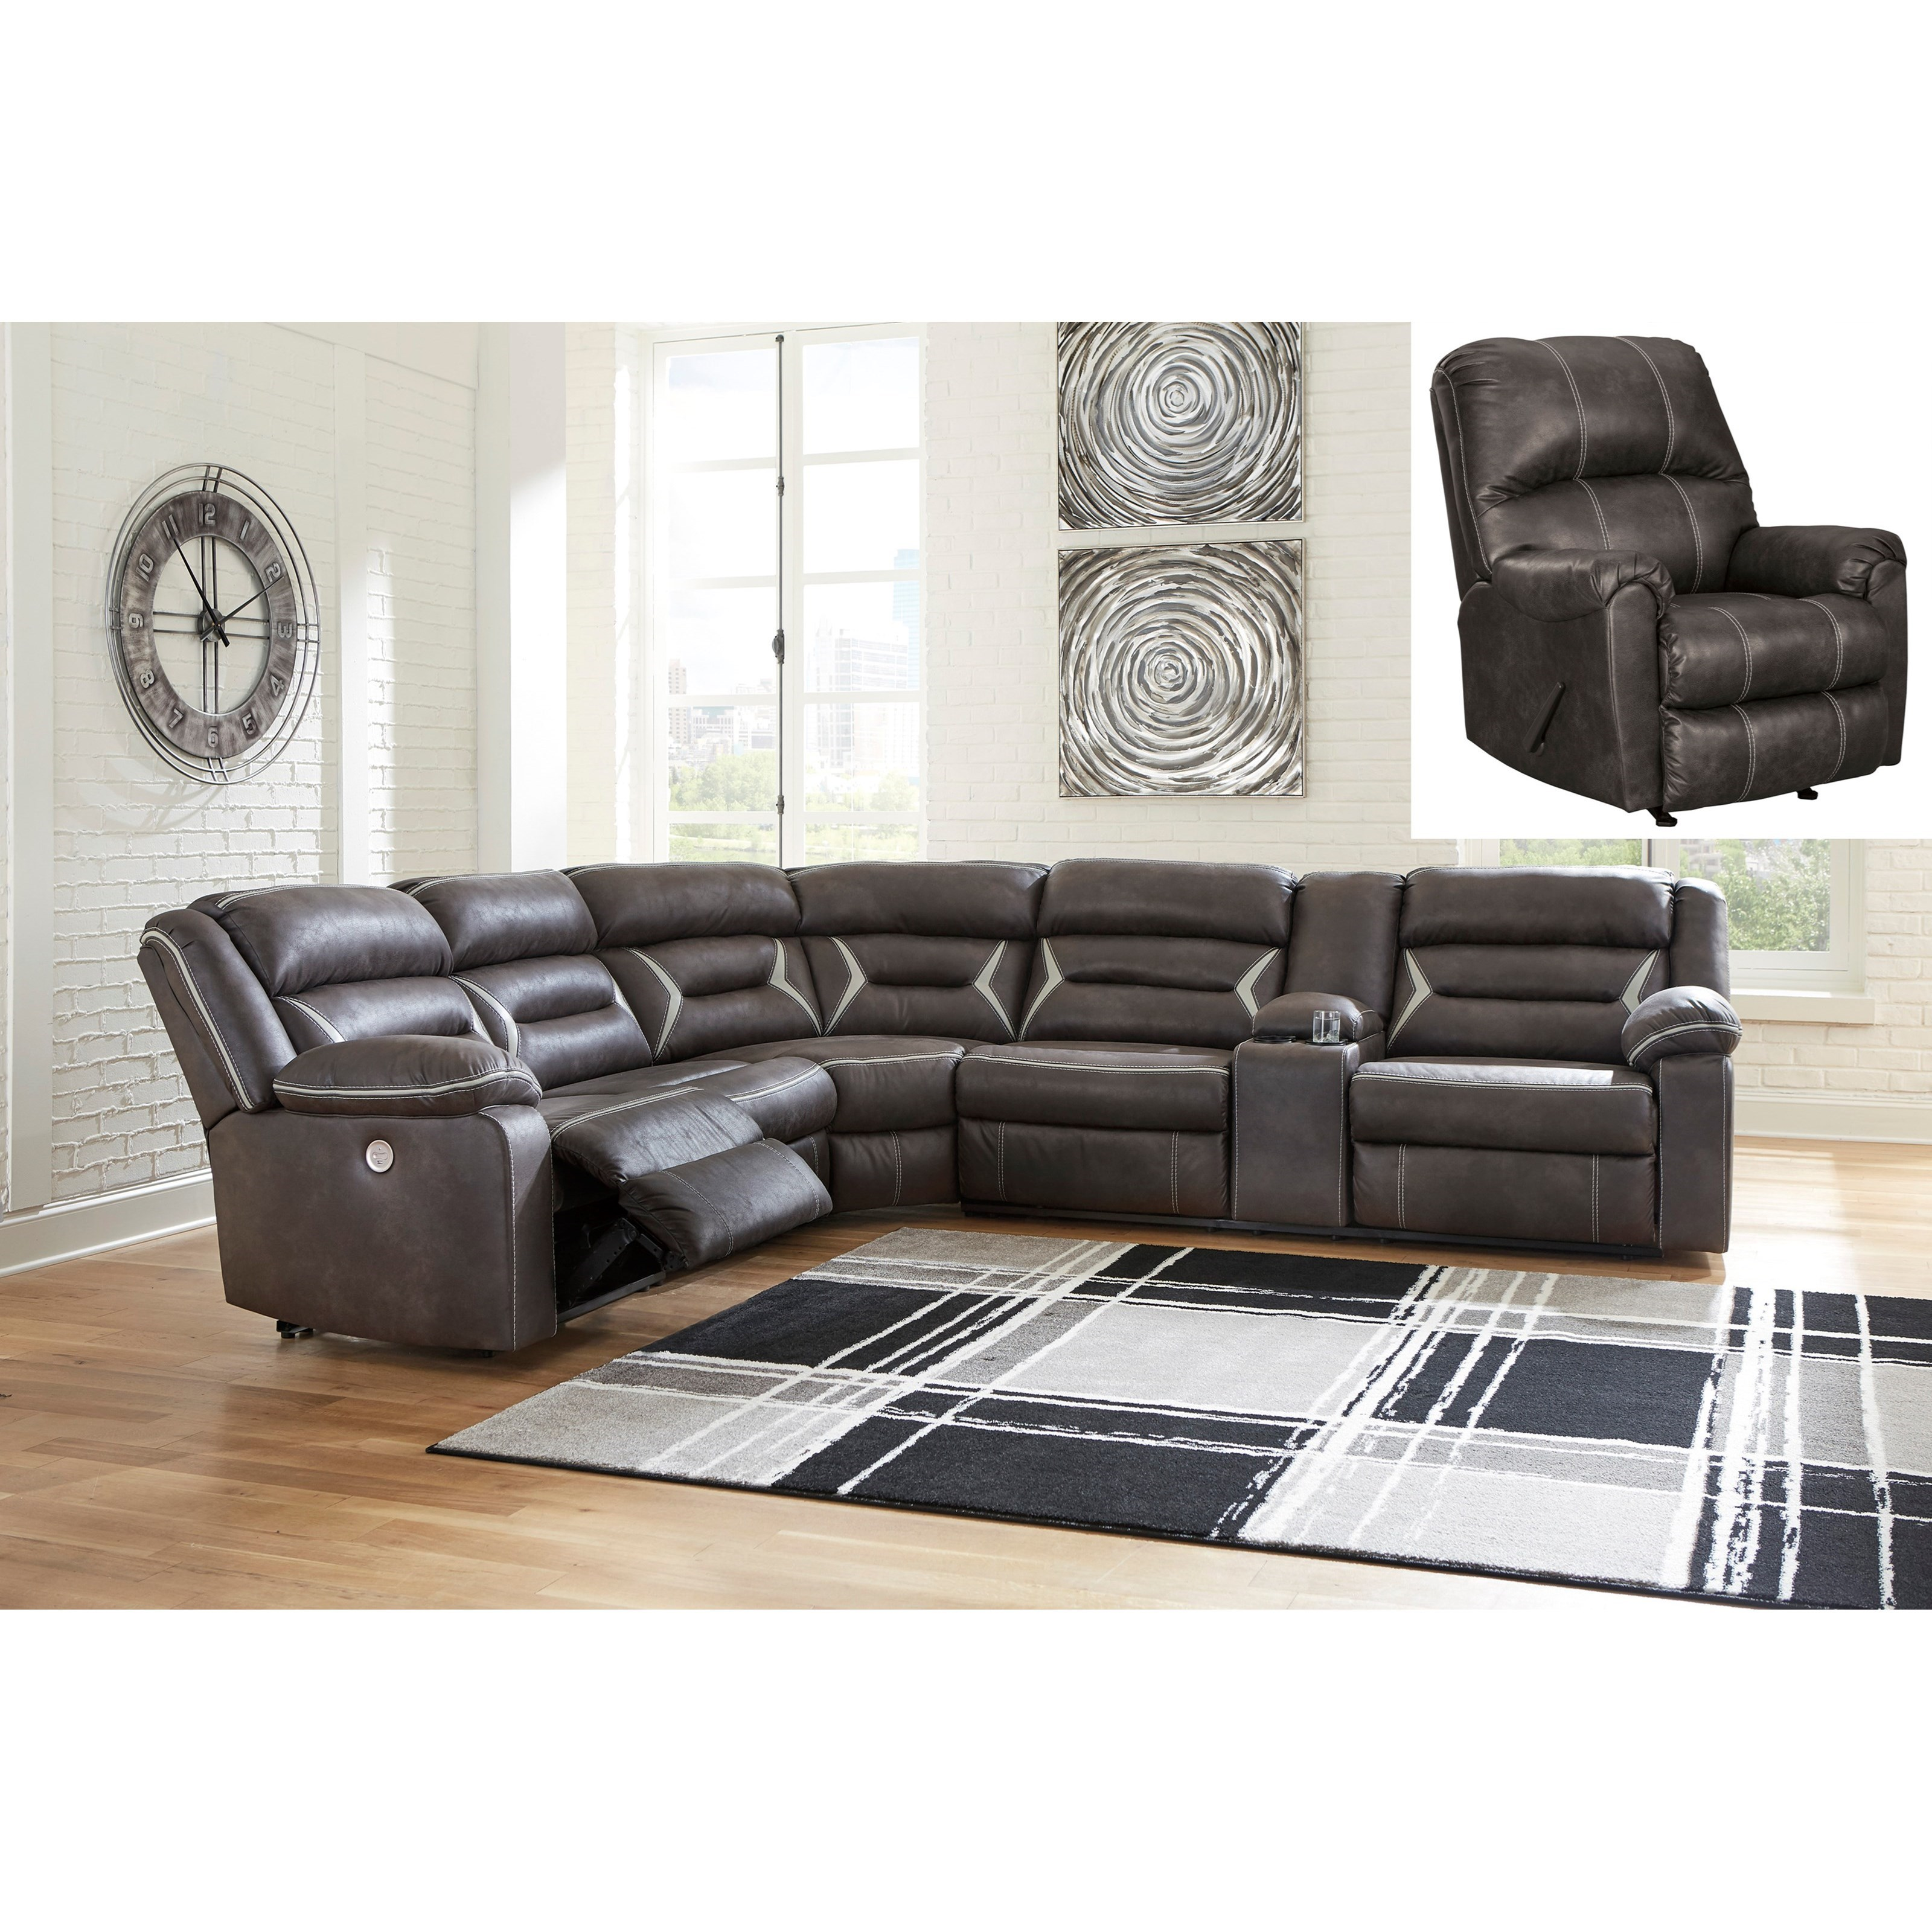 Kincord Power Reclining Living Room Group by Signature Design by Ashley at Northeast Factory Direct